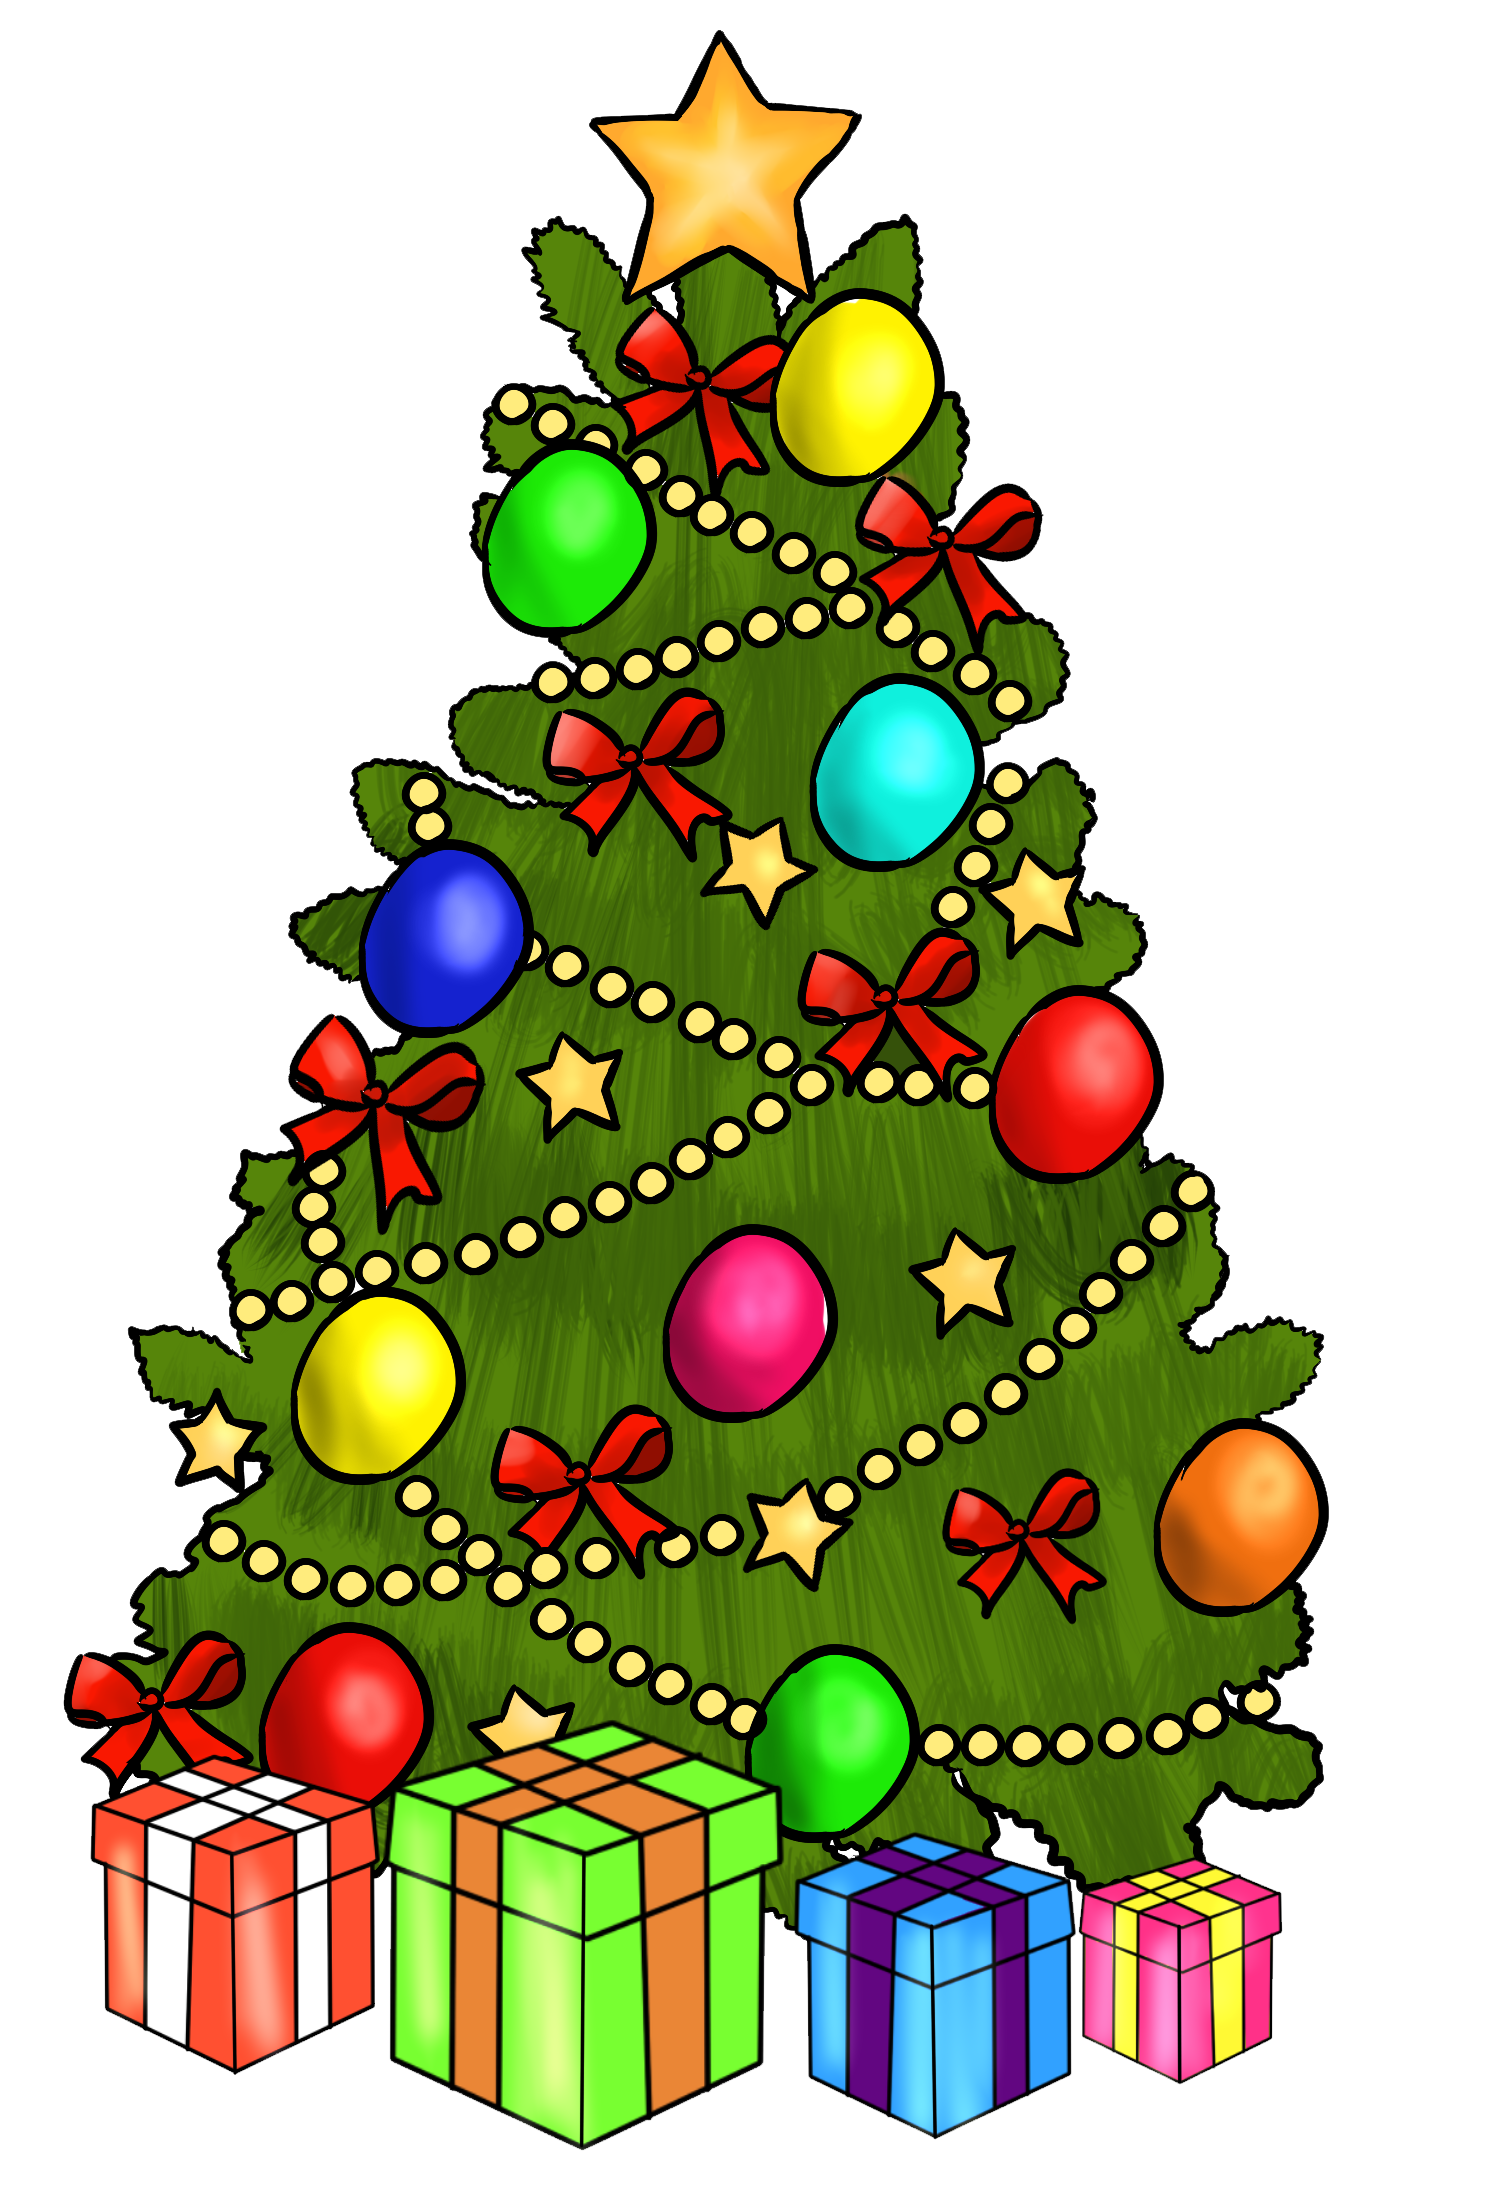 Christmas clip art free large images